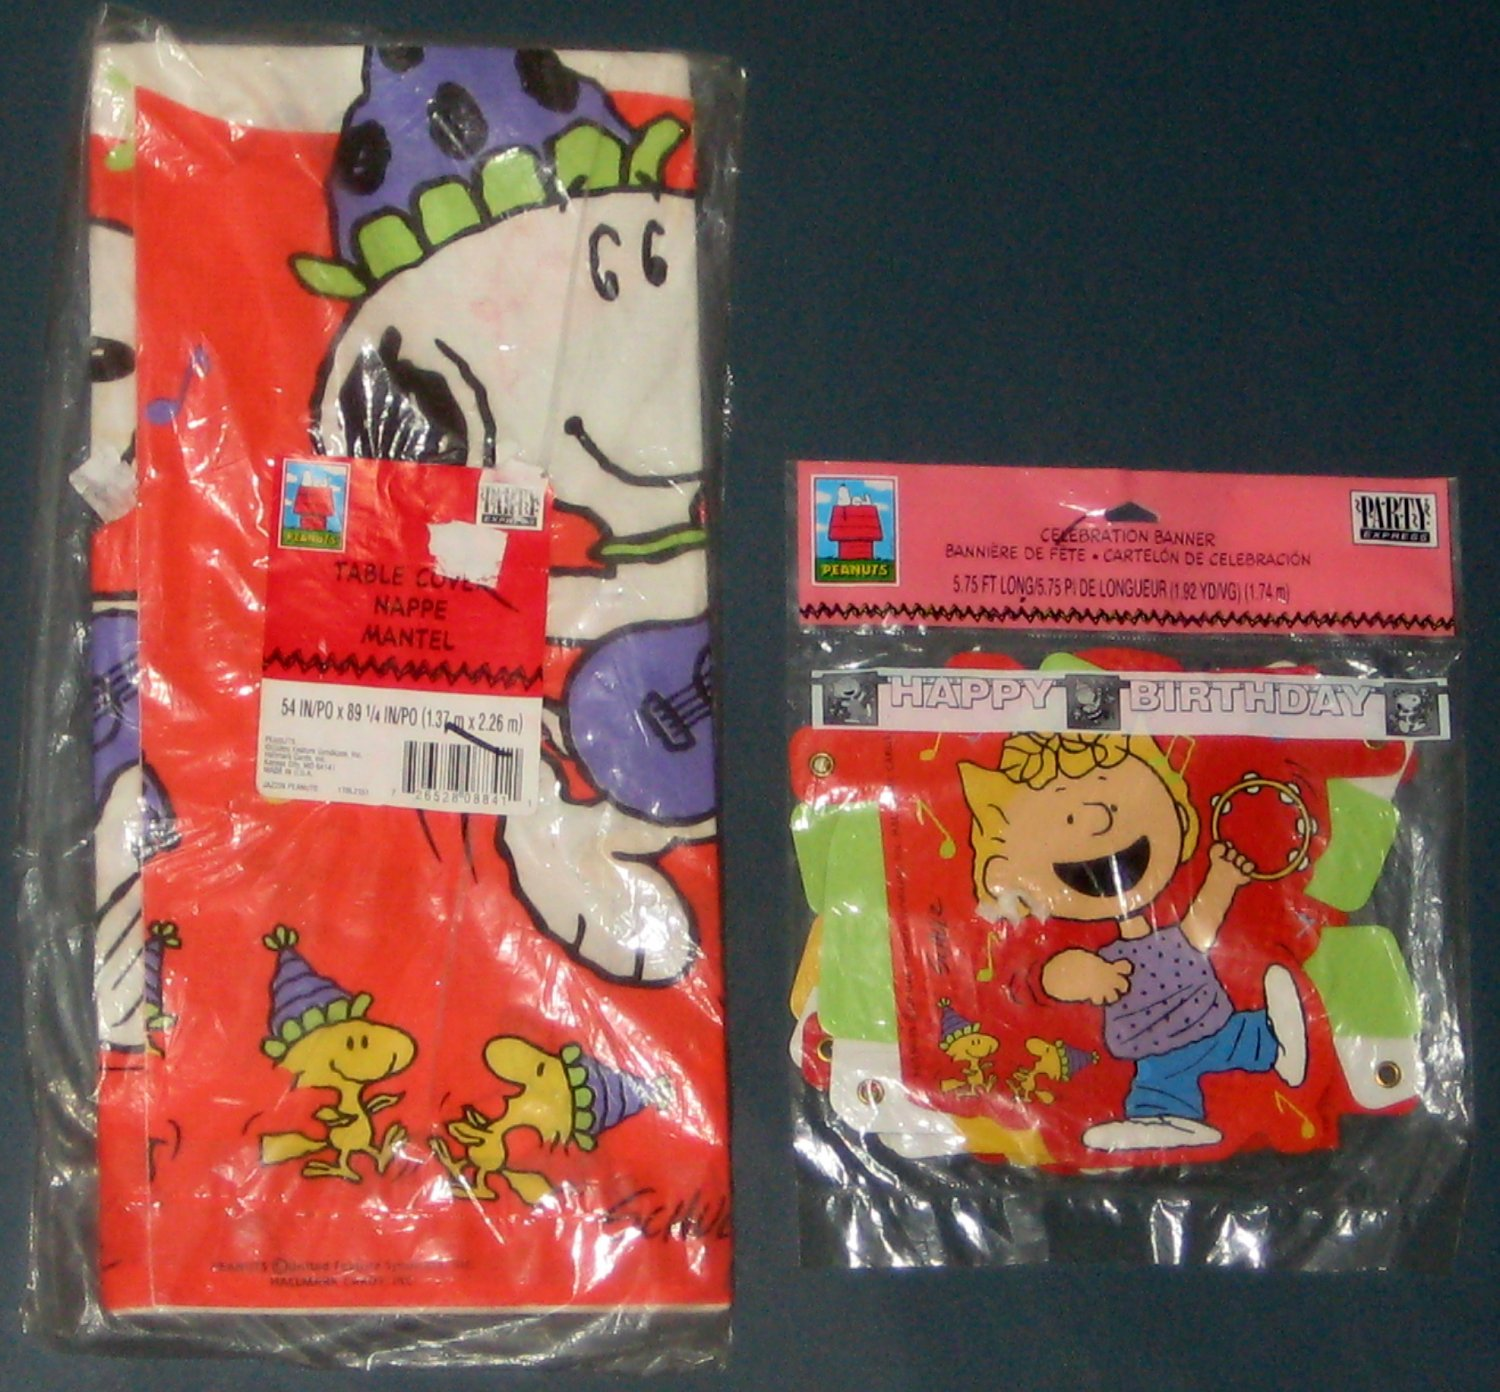 SOLD Jazzin Peanuts Gang Snoopy Birthday Decorations Table Cover Tablecloth Celebration Banner